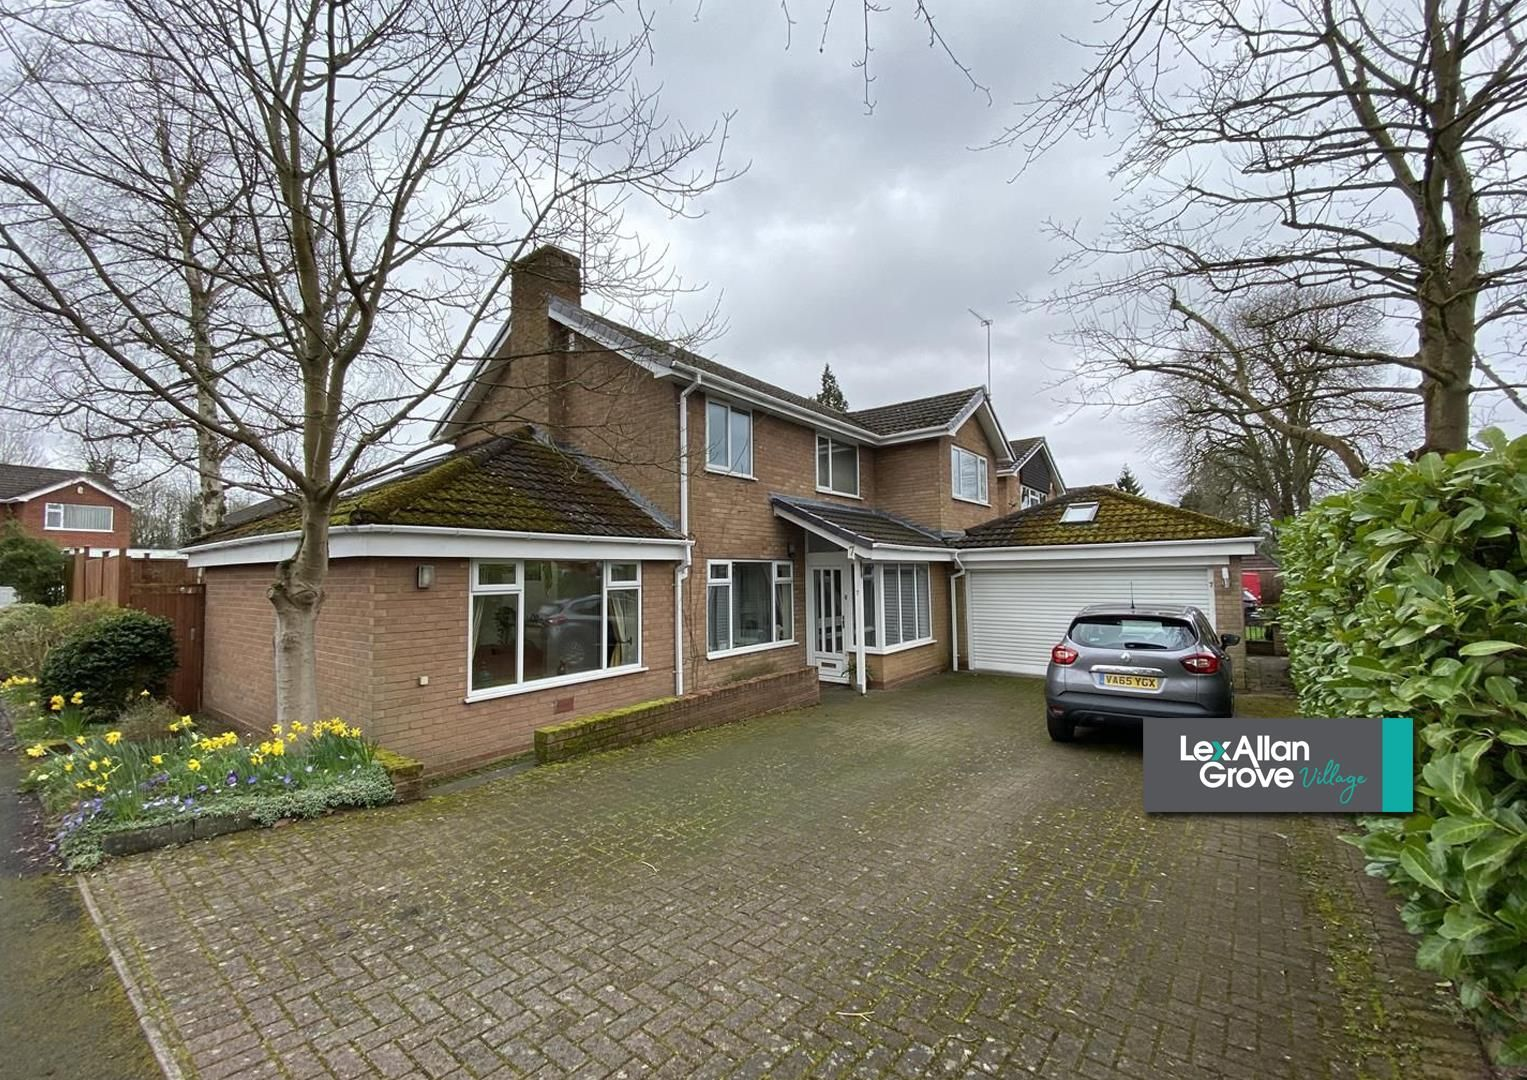 4 bed detached for sale in Blakedown 4